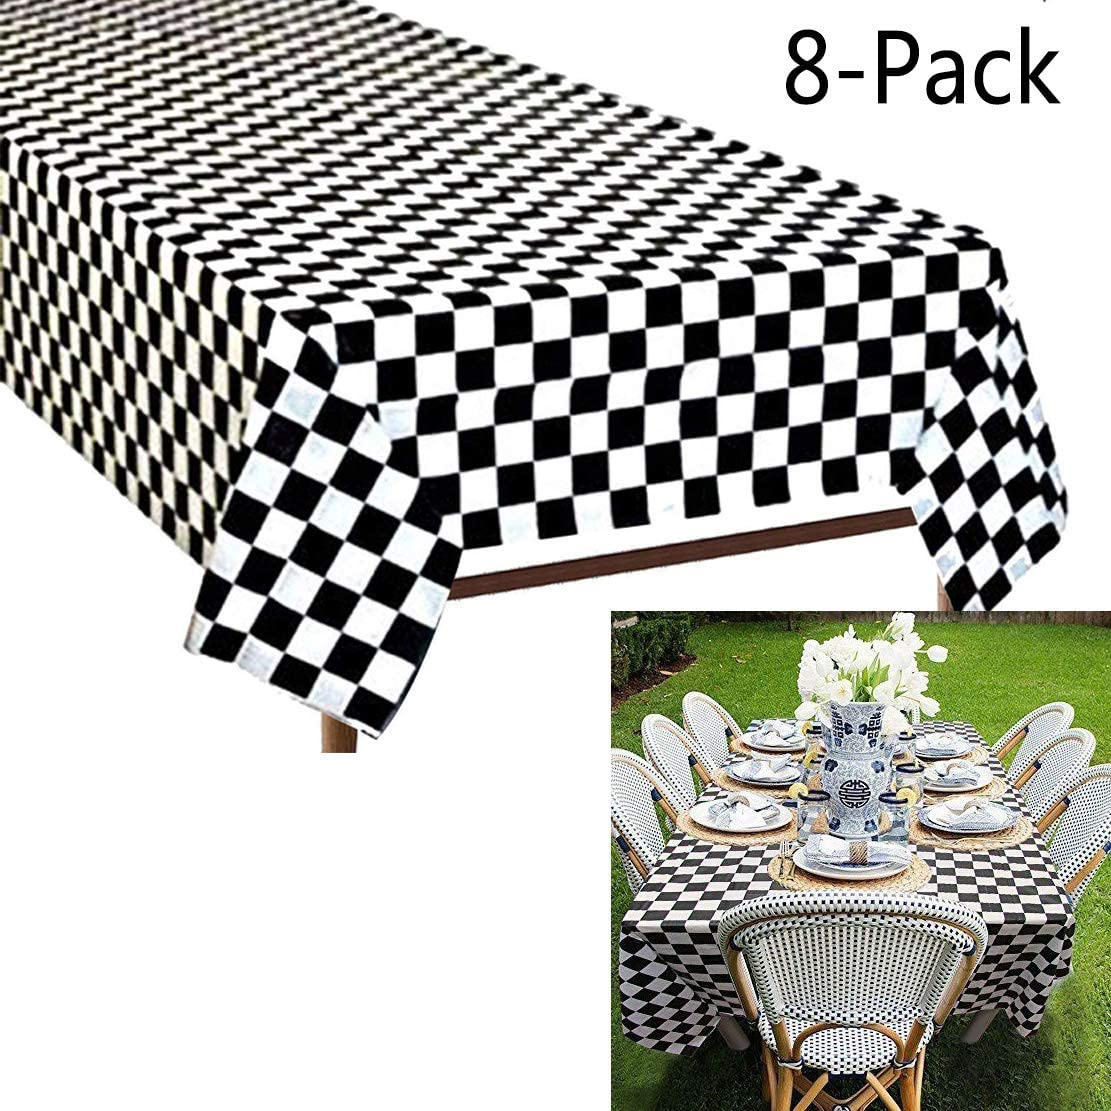 Plastic Black and White Checkered Tablecloths, 8 Packs Plastic Disposable Vinyl Party Tablecloths – Picnic Camping Party Supply Table Cover for Birthdays, Gatherings, Holidays, BBQ Black and White